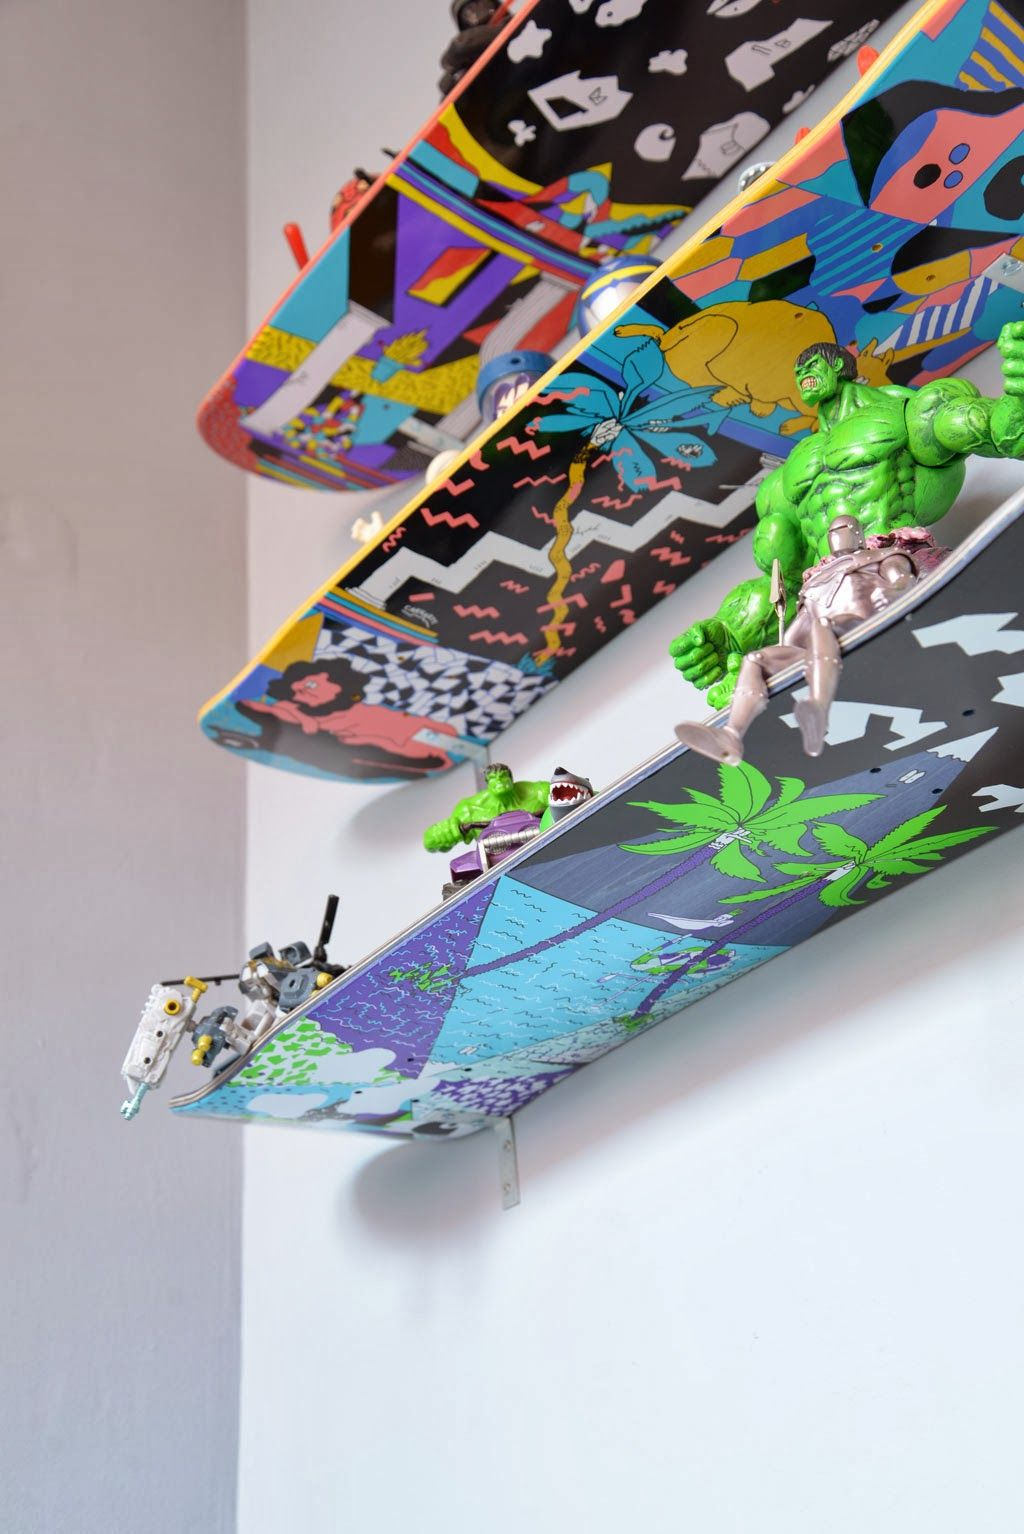 for children: skateboards as shelves for toys